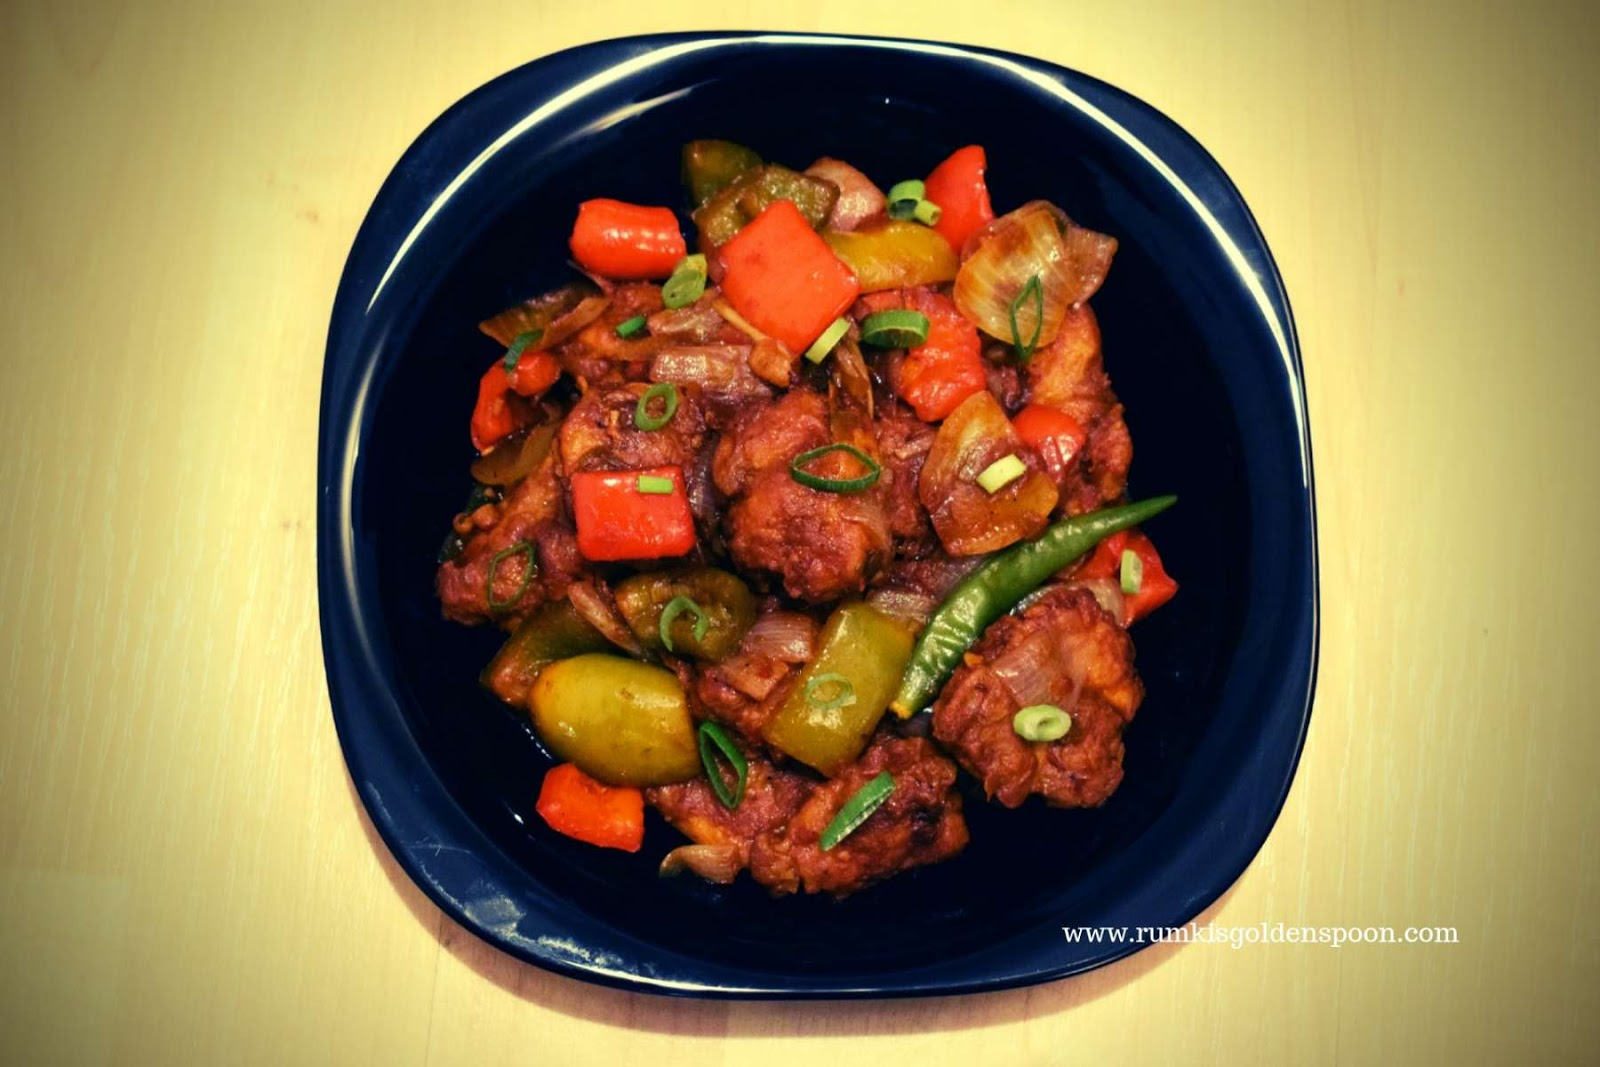 Chinese recipe, Restaurant Style Chilli Chicken, Quick and Easy, Rumki's Golden Spoon, Chinese recipe with chicken, chicken recipe, Indo-chinese recipes, chicken appetizer recipe, nonveg starter/appetizer recipe, spicy chicken/murgi recipe, chicken recipe with capsicum/bell peppers